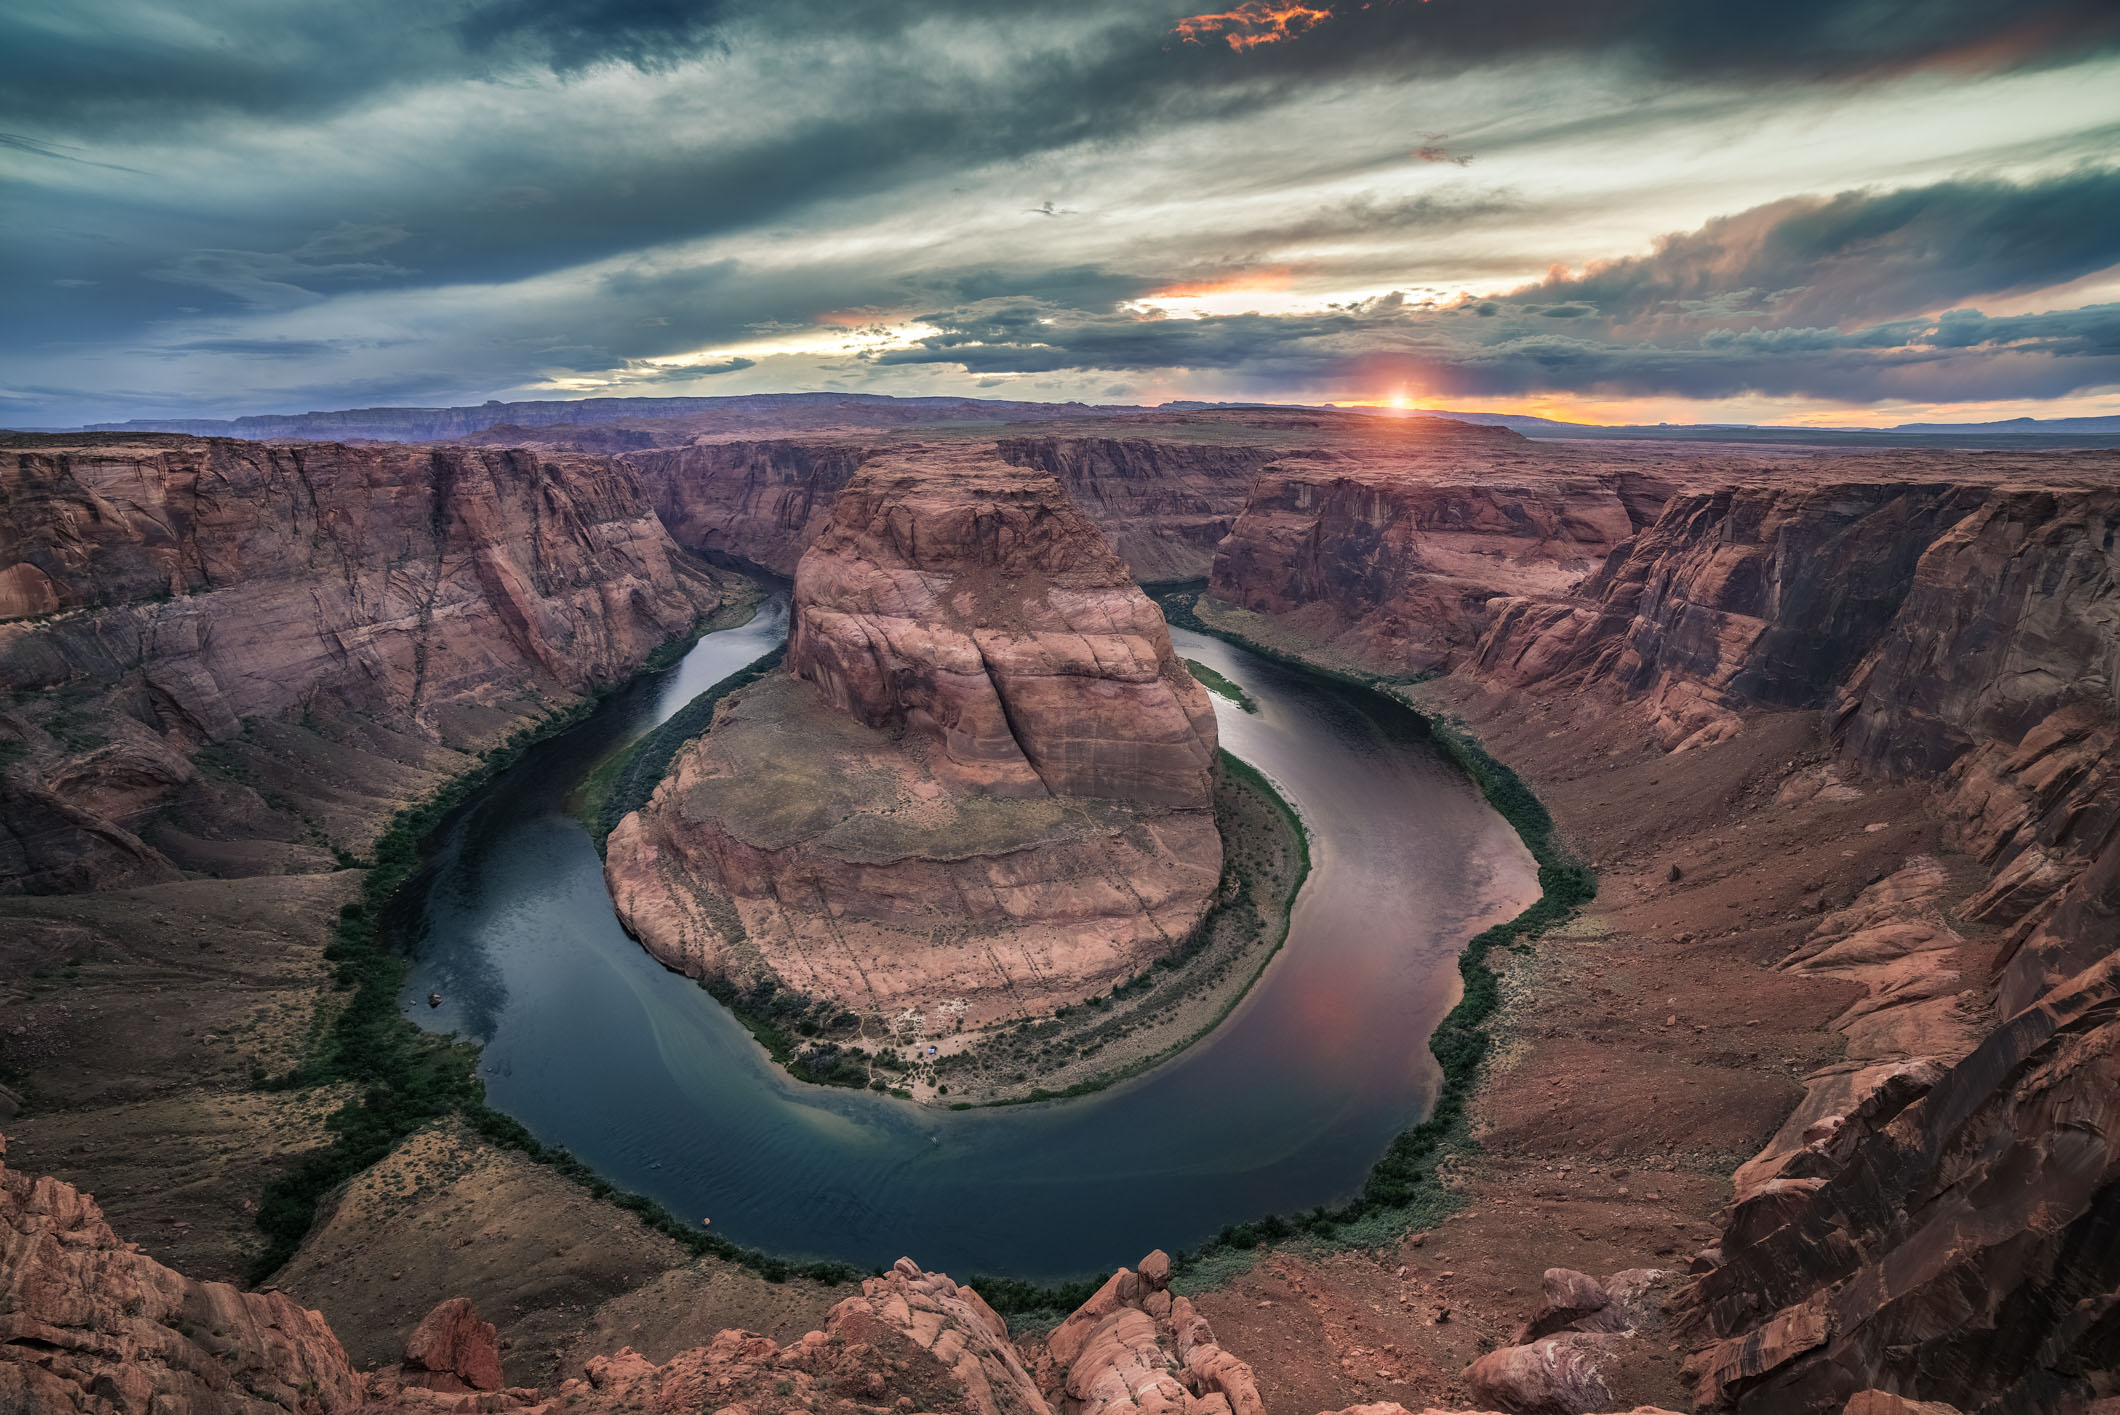 USA 2016 - Horseshoe Bend